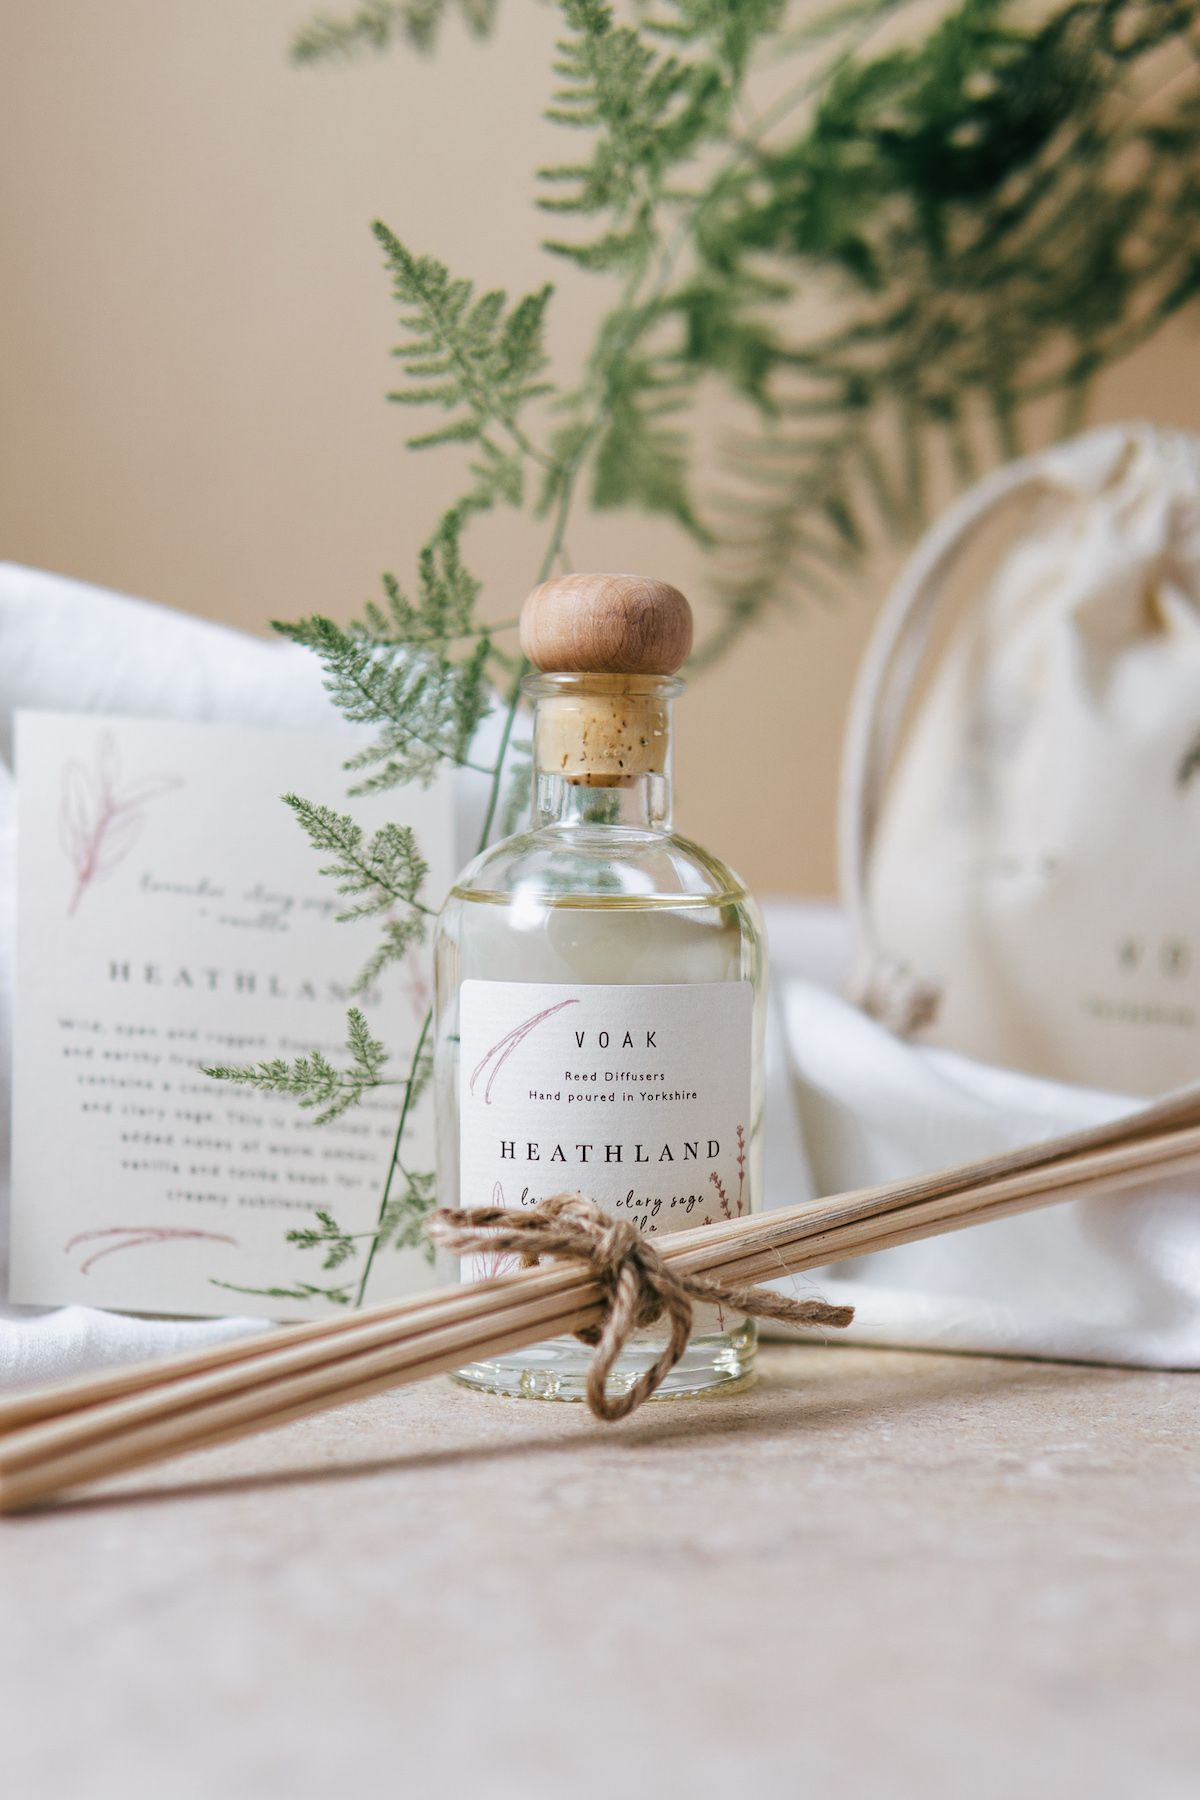 NATURAL-HOME-FRAGRANCE-VOAK-YORK-STUDIO-PHOTOGRAPHY-CHLOE-UPTON-STUDIO